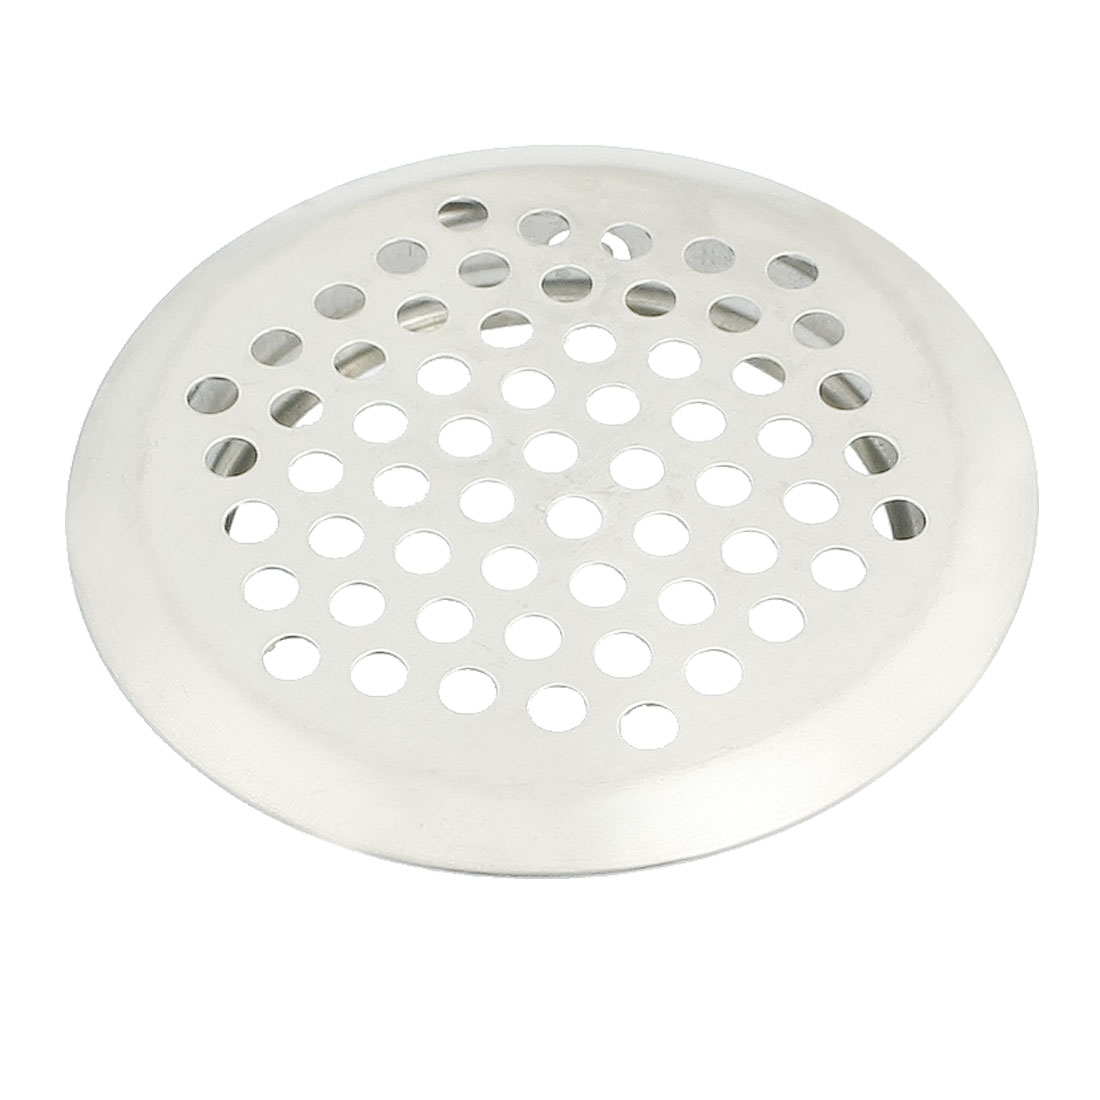 Home Hardware 53mm Bottom Diameter Metal Round Air Vent Louver